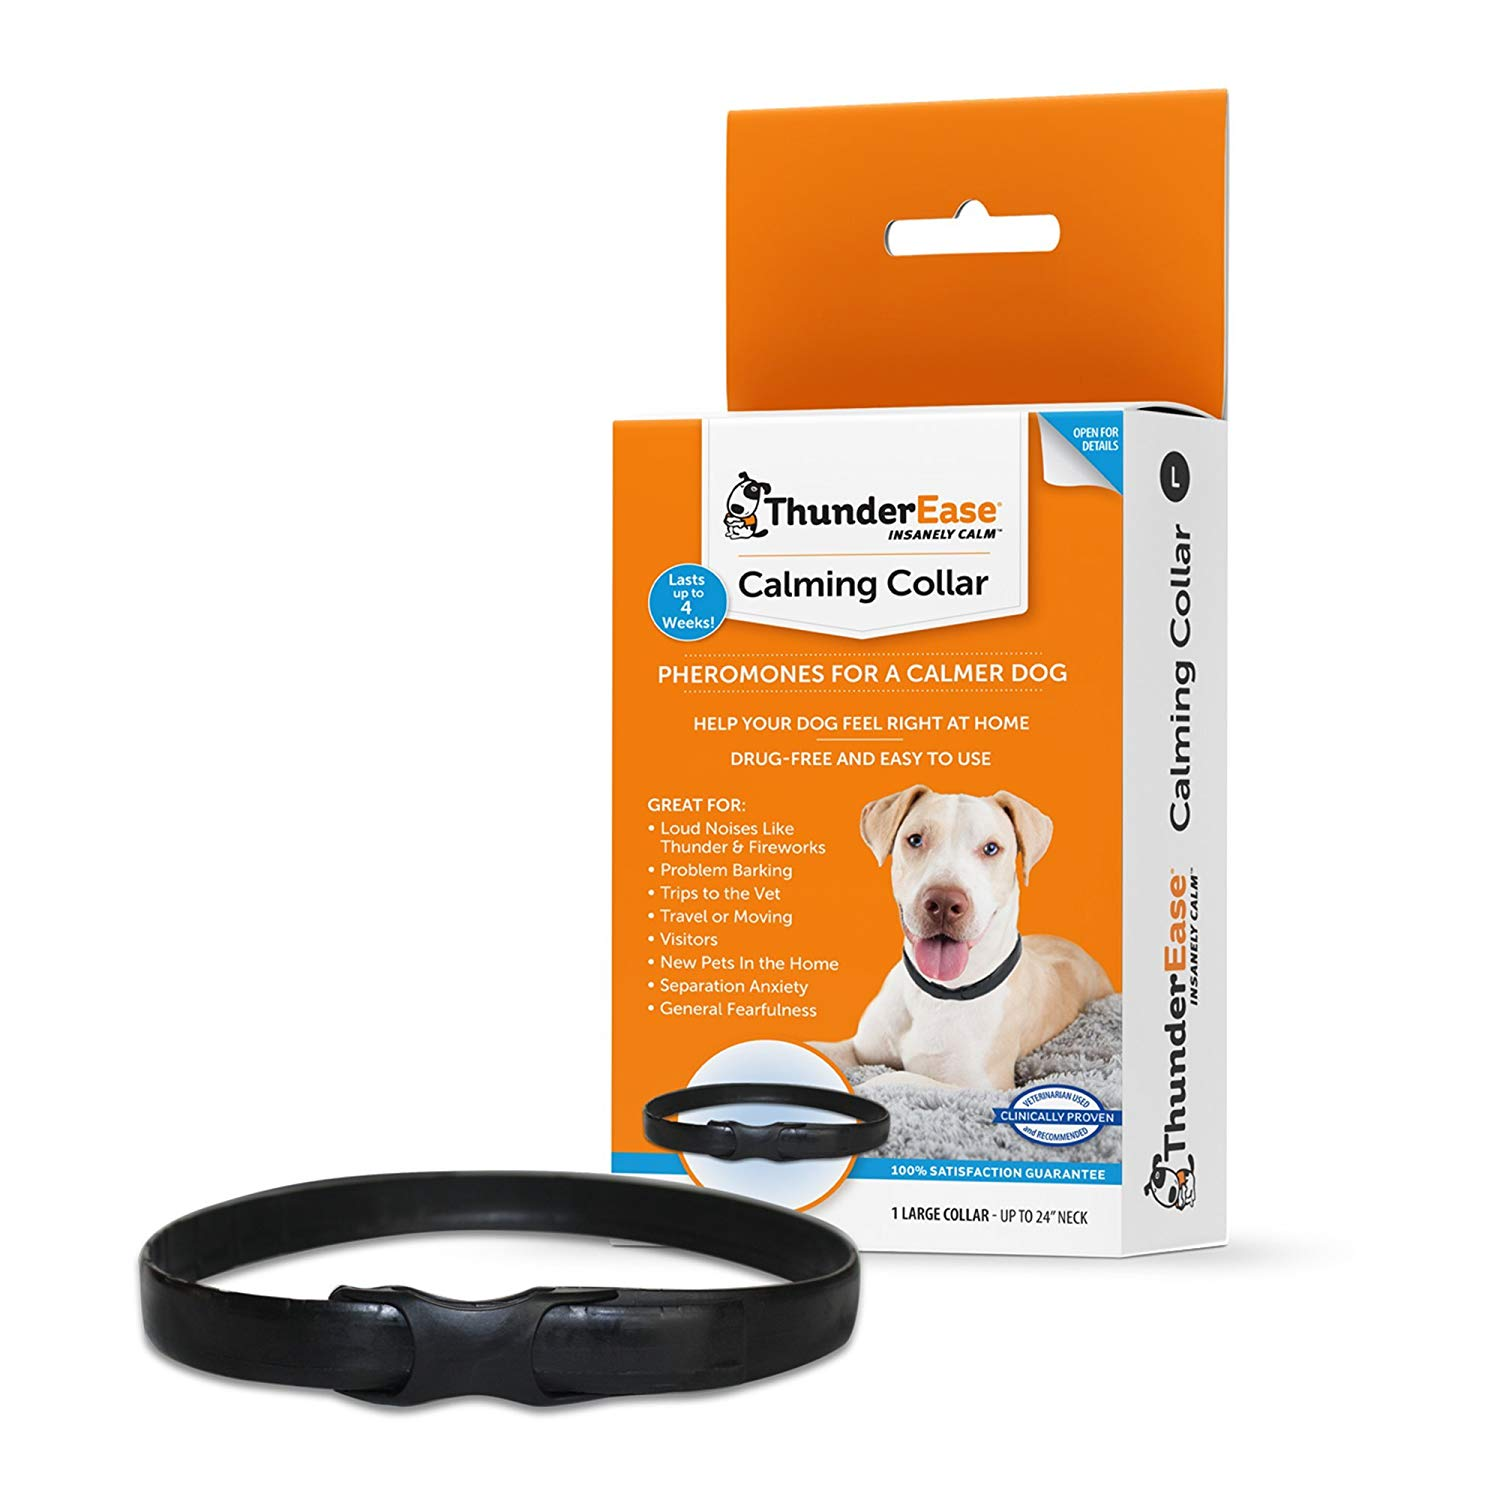 ThunderEase Calming Collar for Dogs